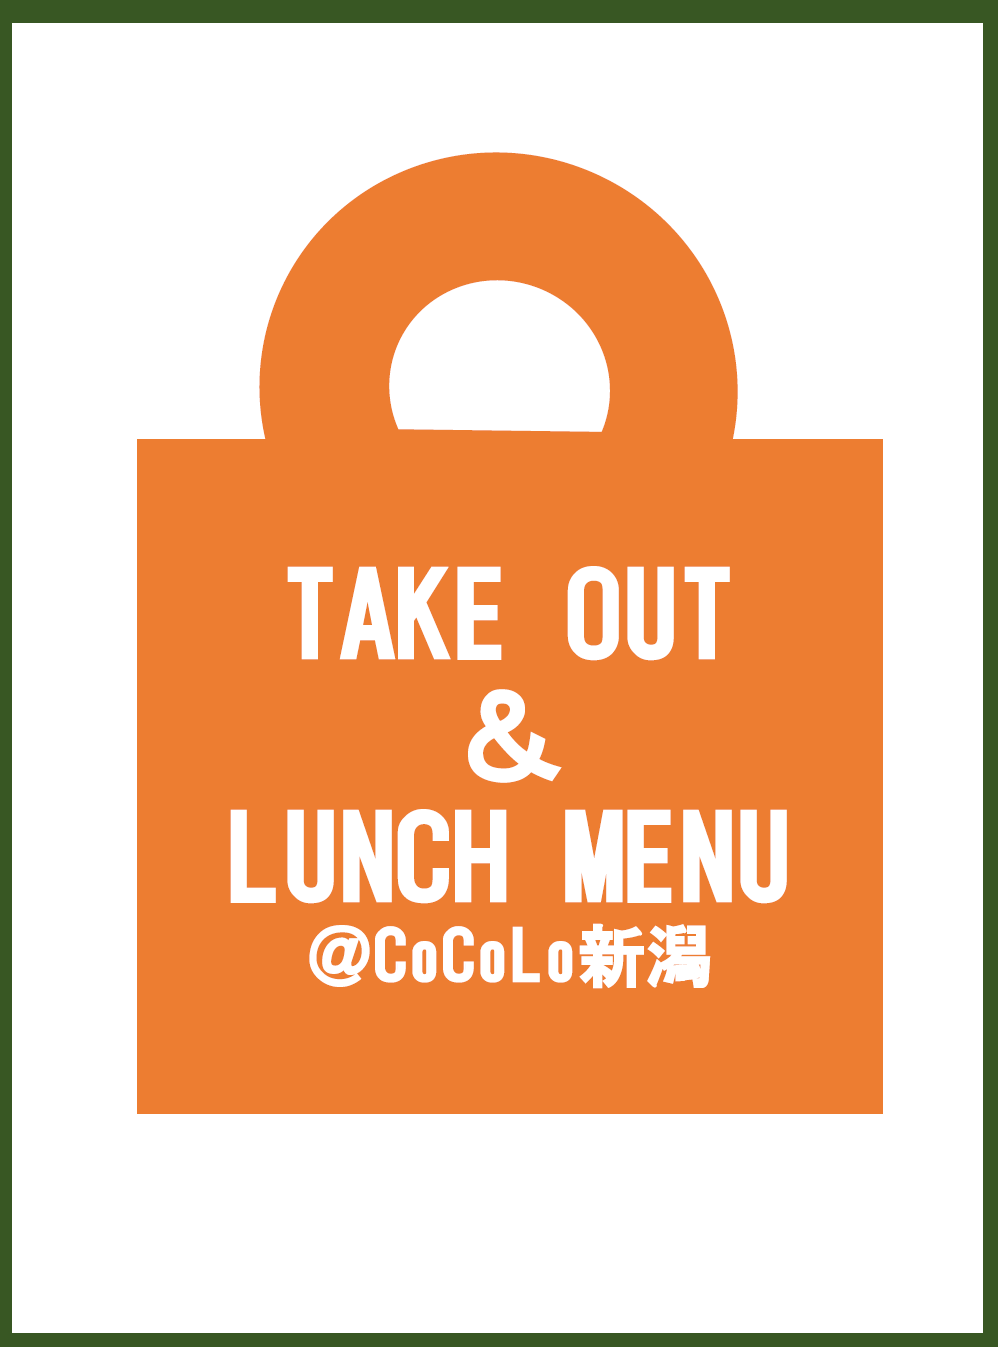 TAKE OUT & LUNCH MENU @CoCoLo新潟